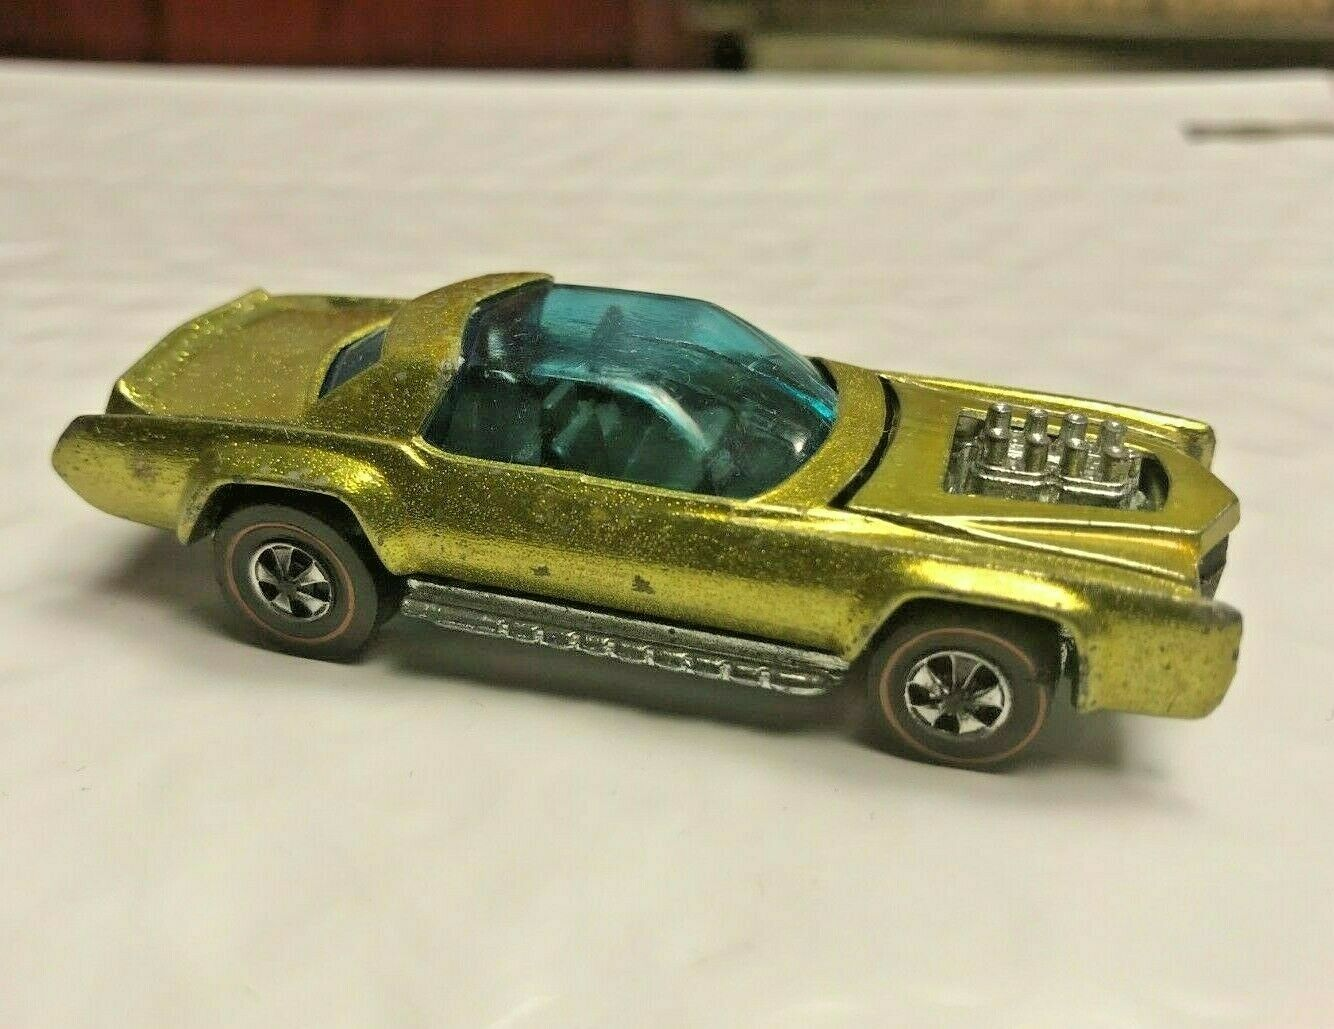 Hot Wheels Redline 1971 Sugar Caddy HK base YELLOW BROWN INT blueE GLASS